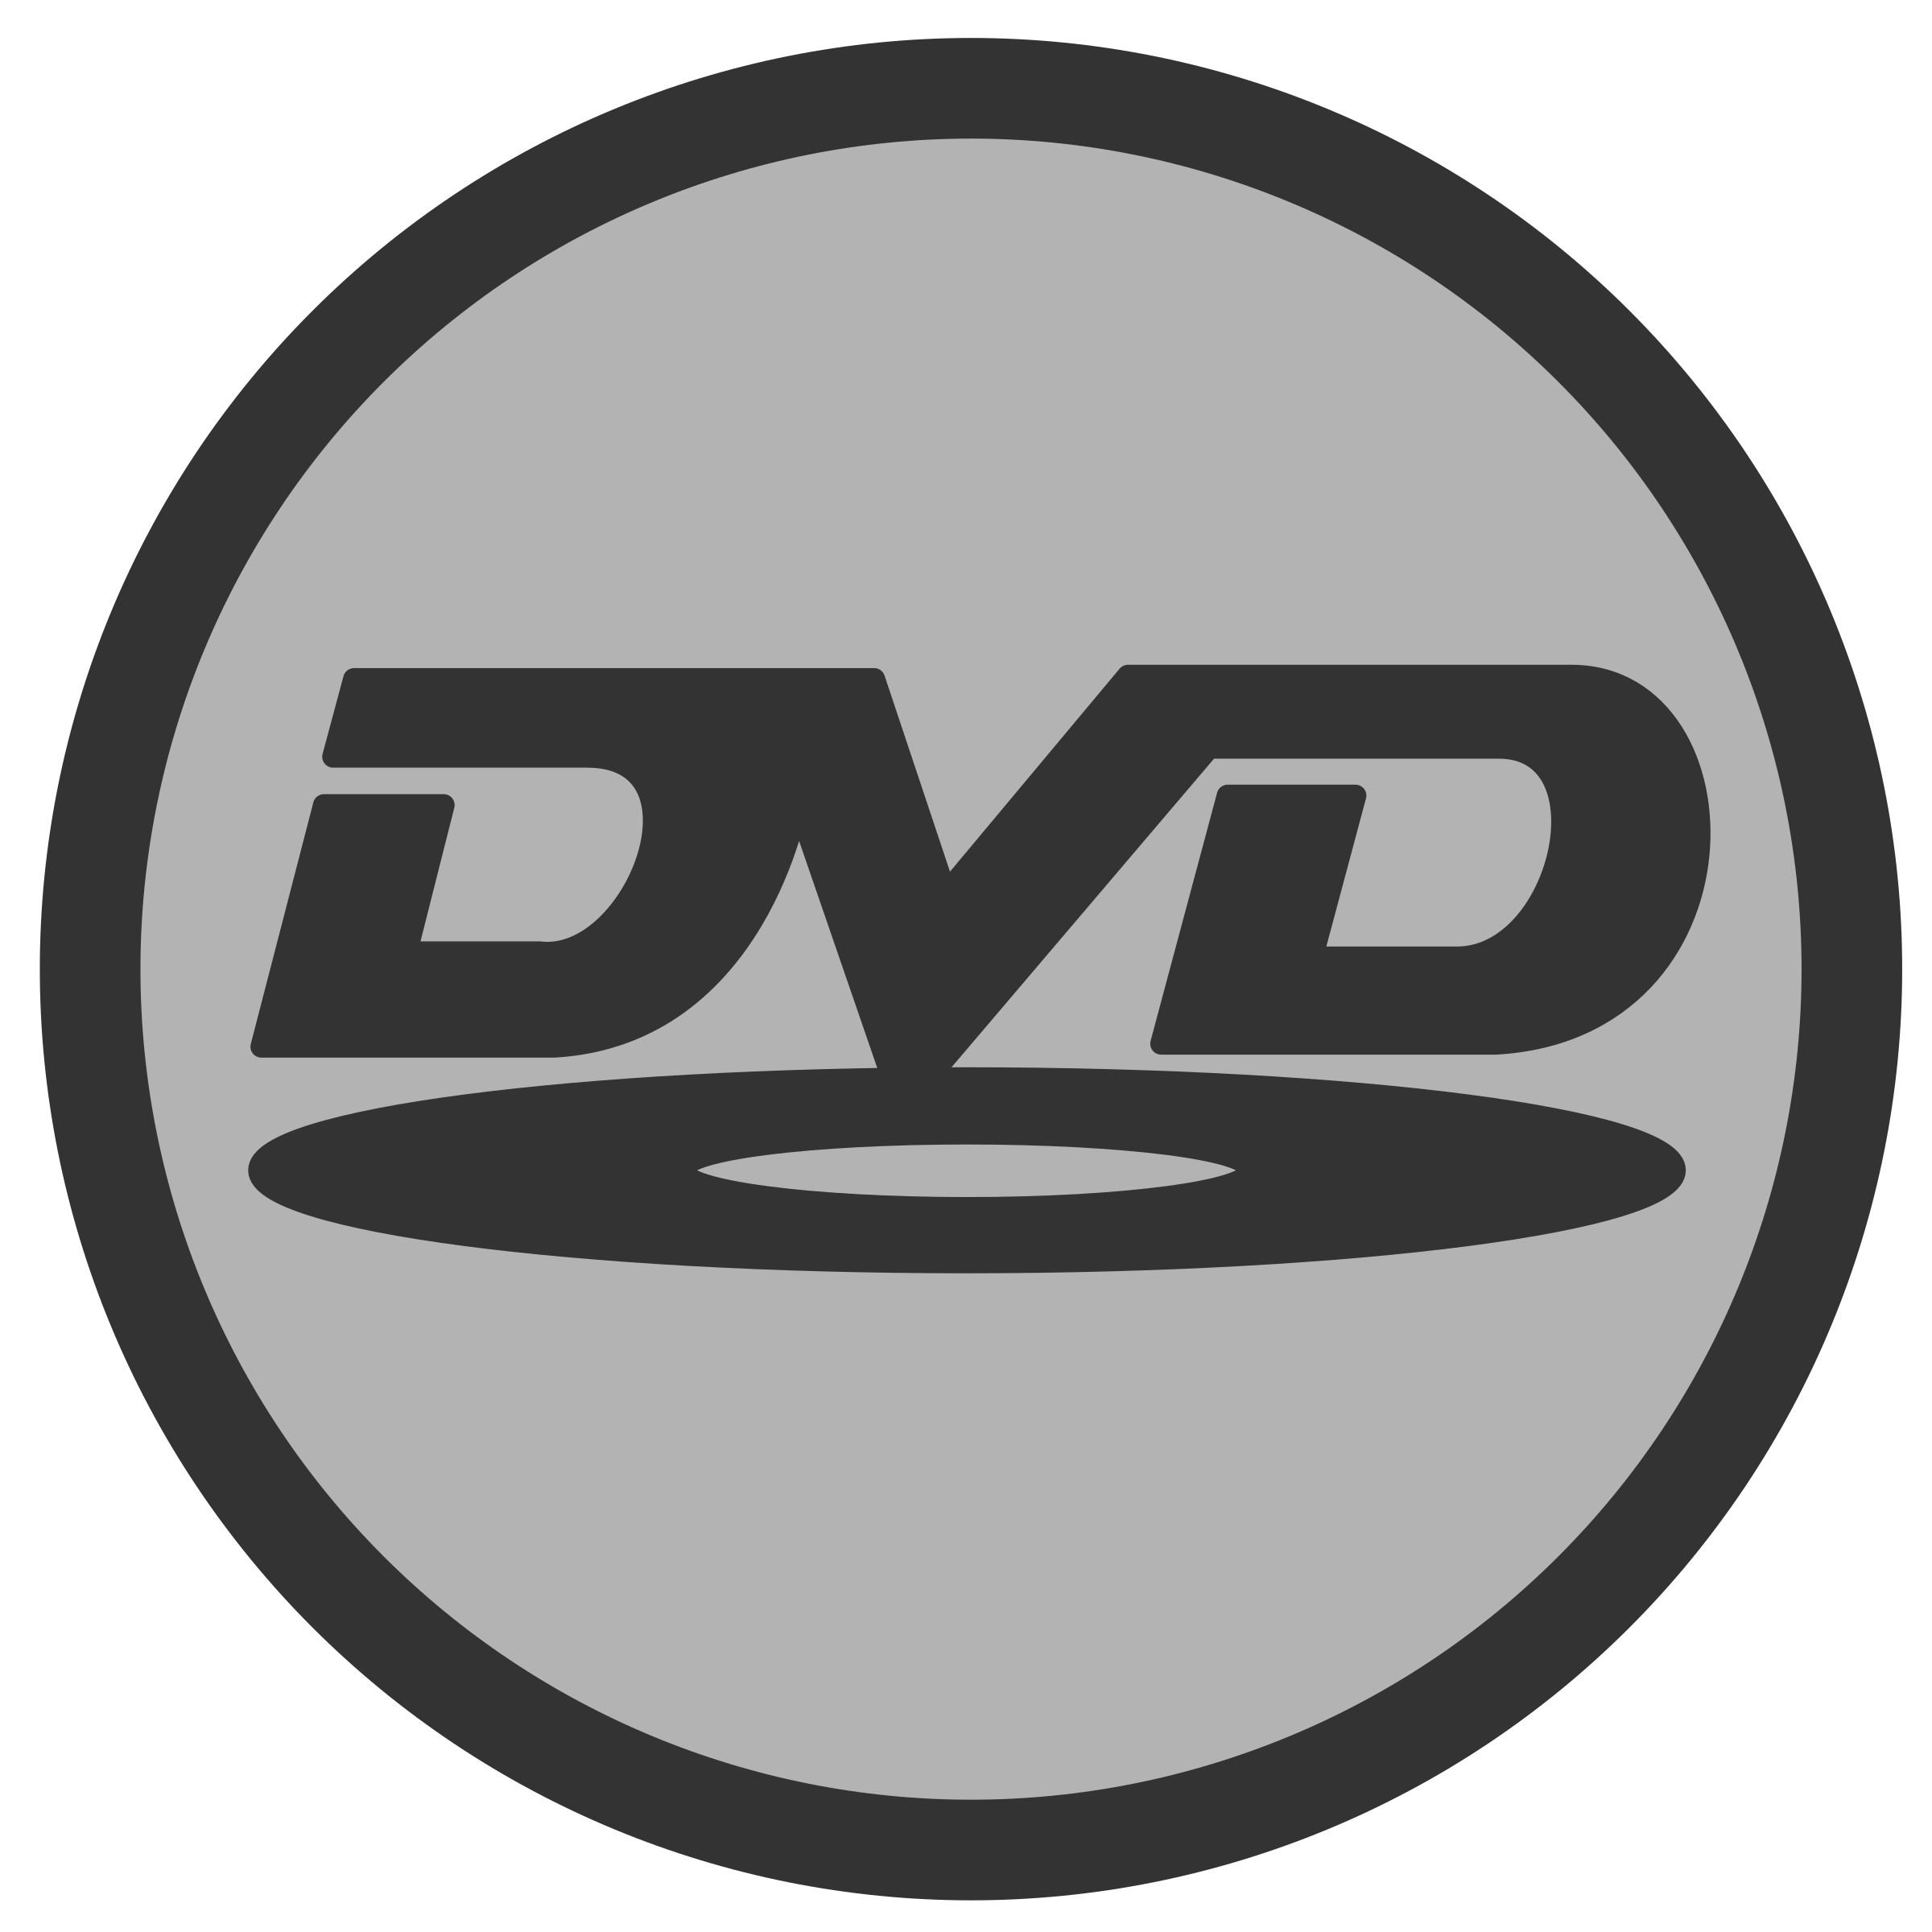 ftdvd mount by dannya